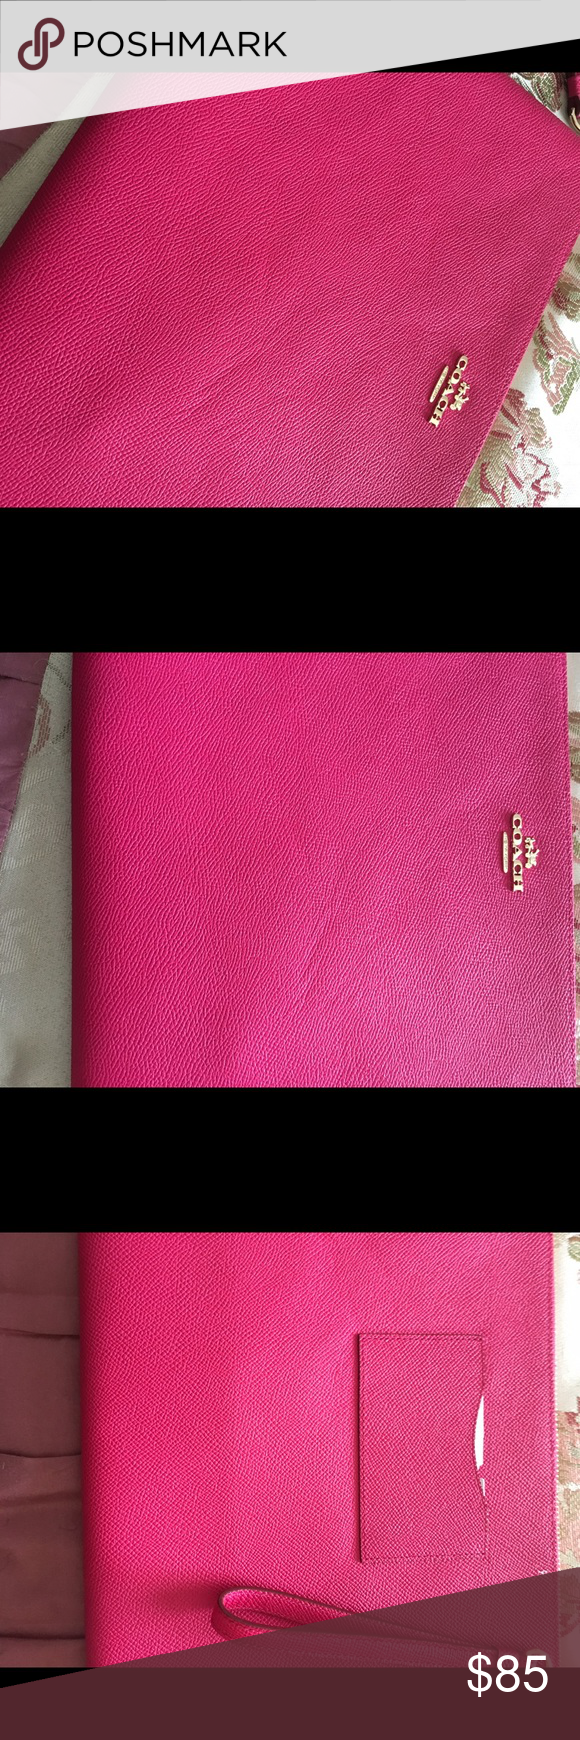 Coach iPad Pro Case Coach case for IPad Pro.  Also has a section for cards and a phone Coach Bags Cosmetic Bags & Cases